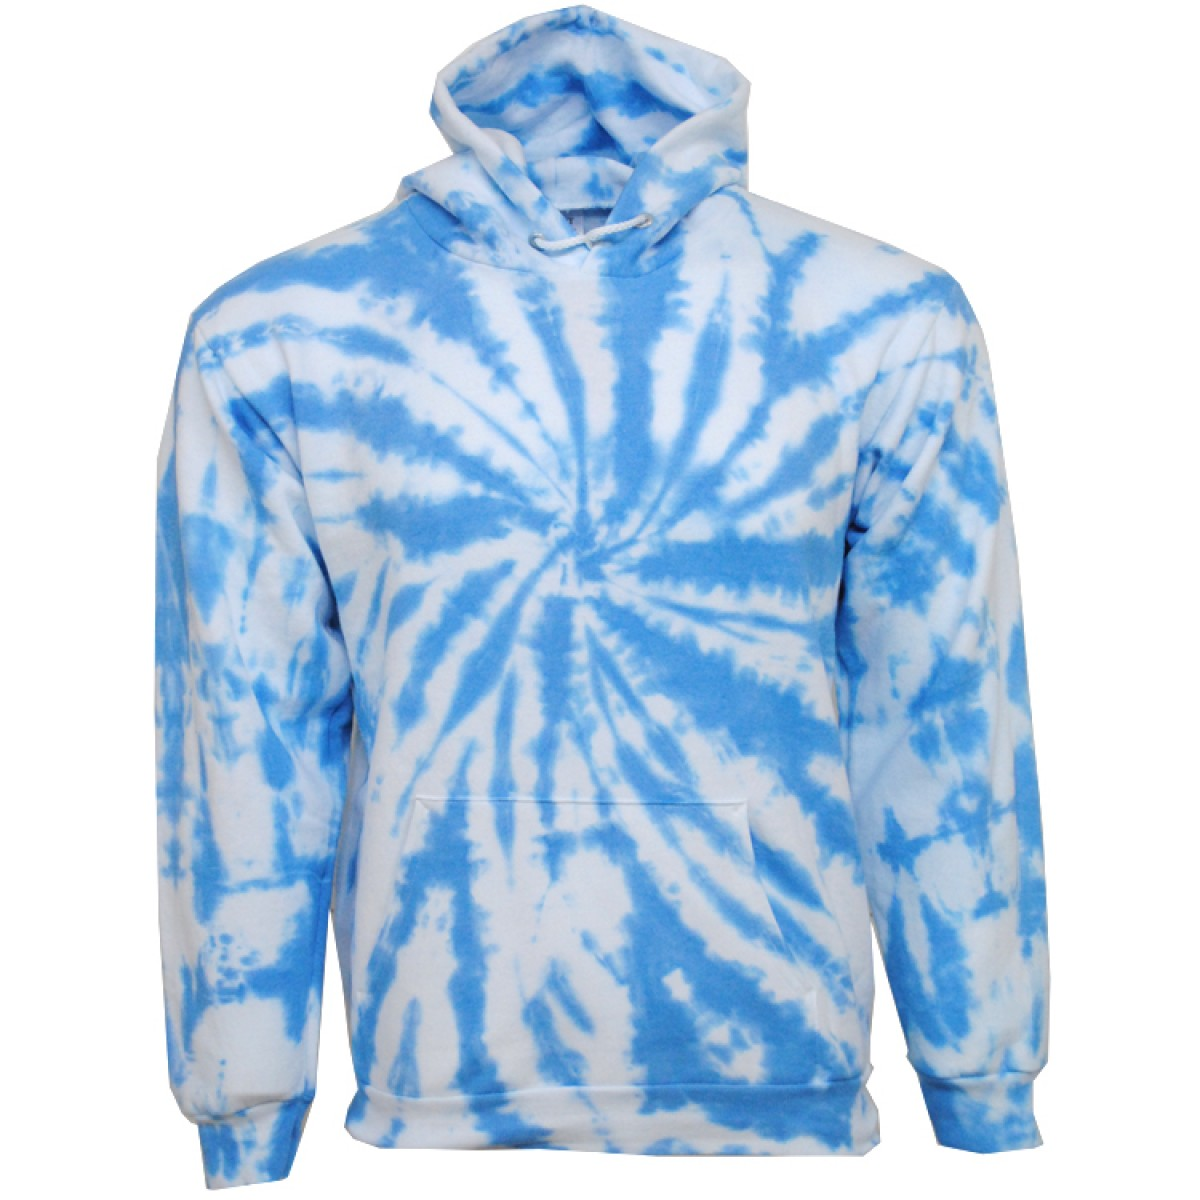 Tie die Blue Hooded Sweatshirt  50/50 Heavy Blend